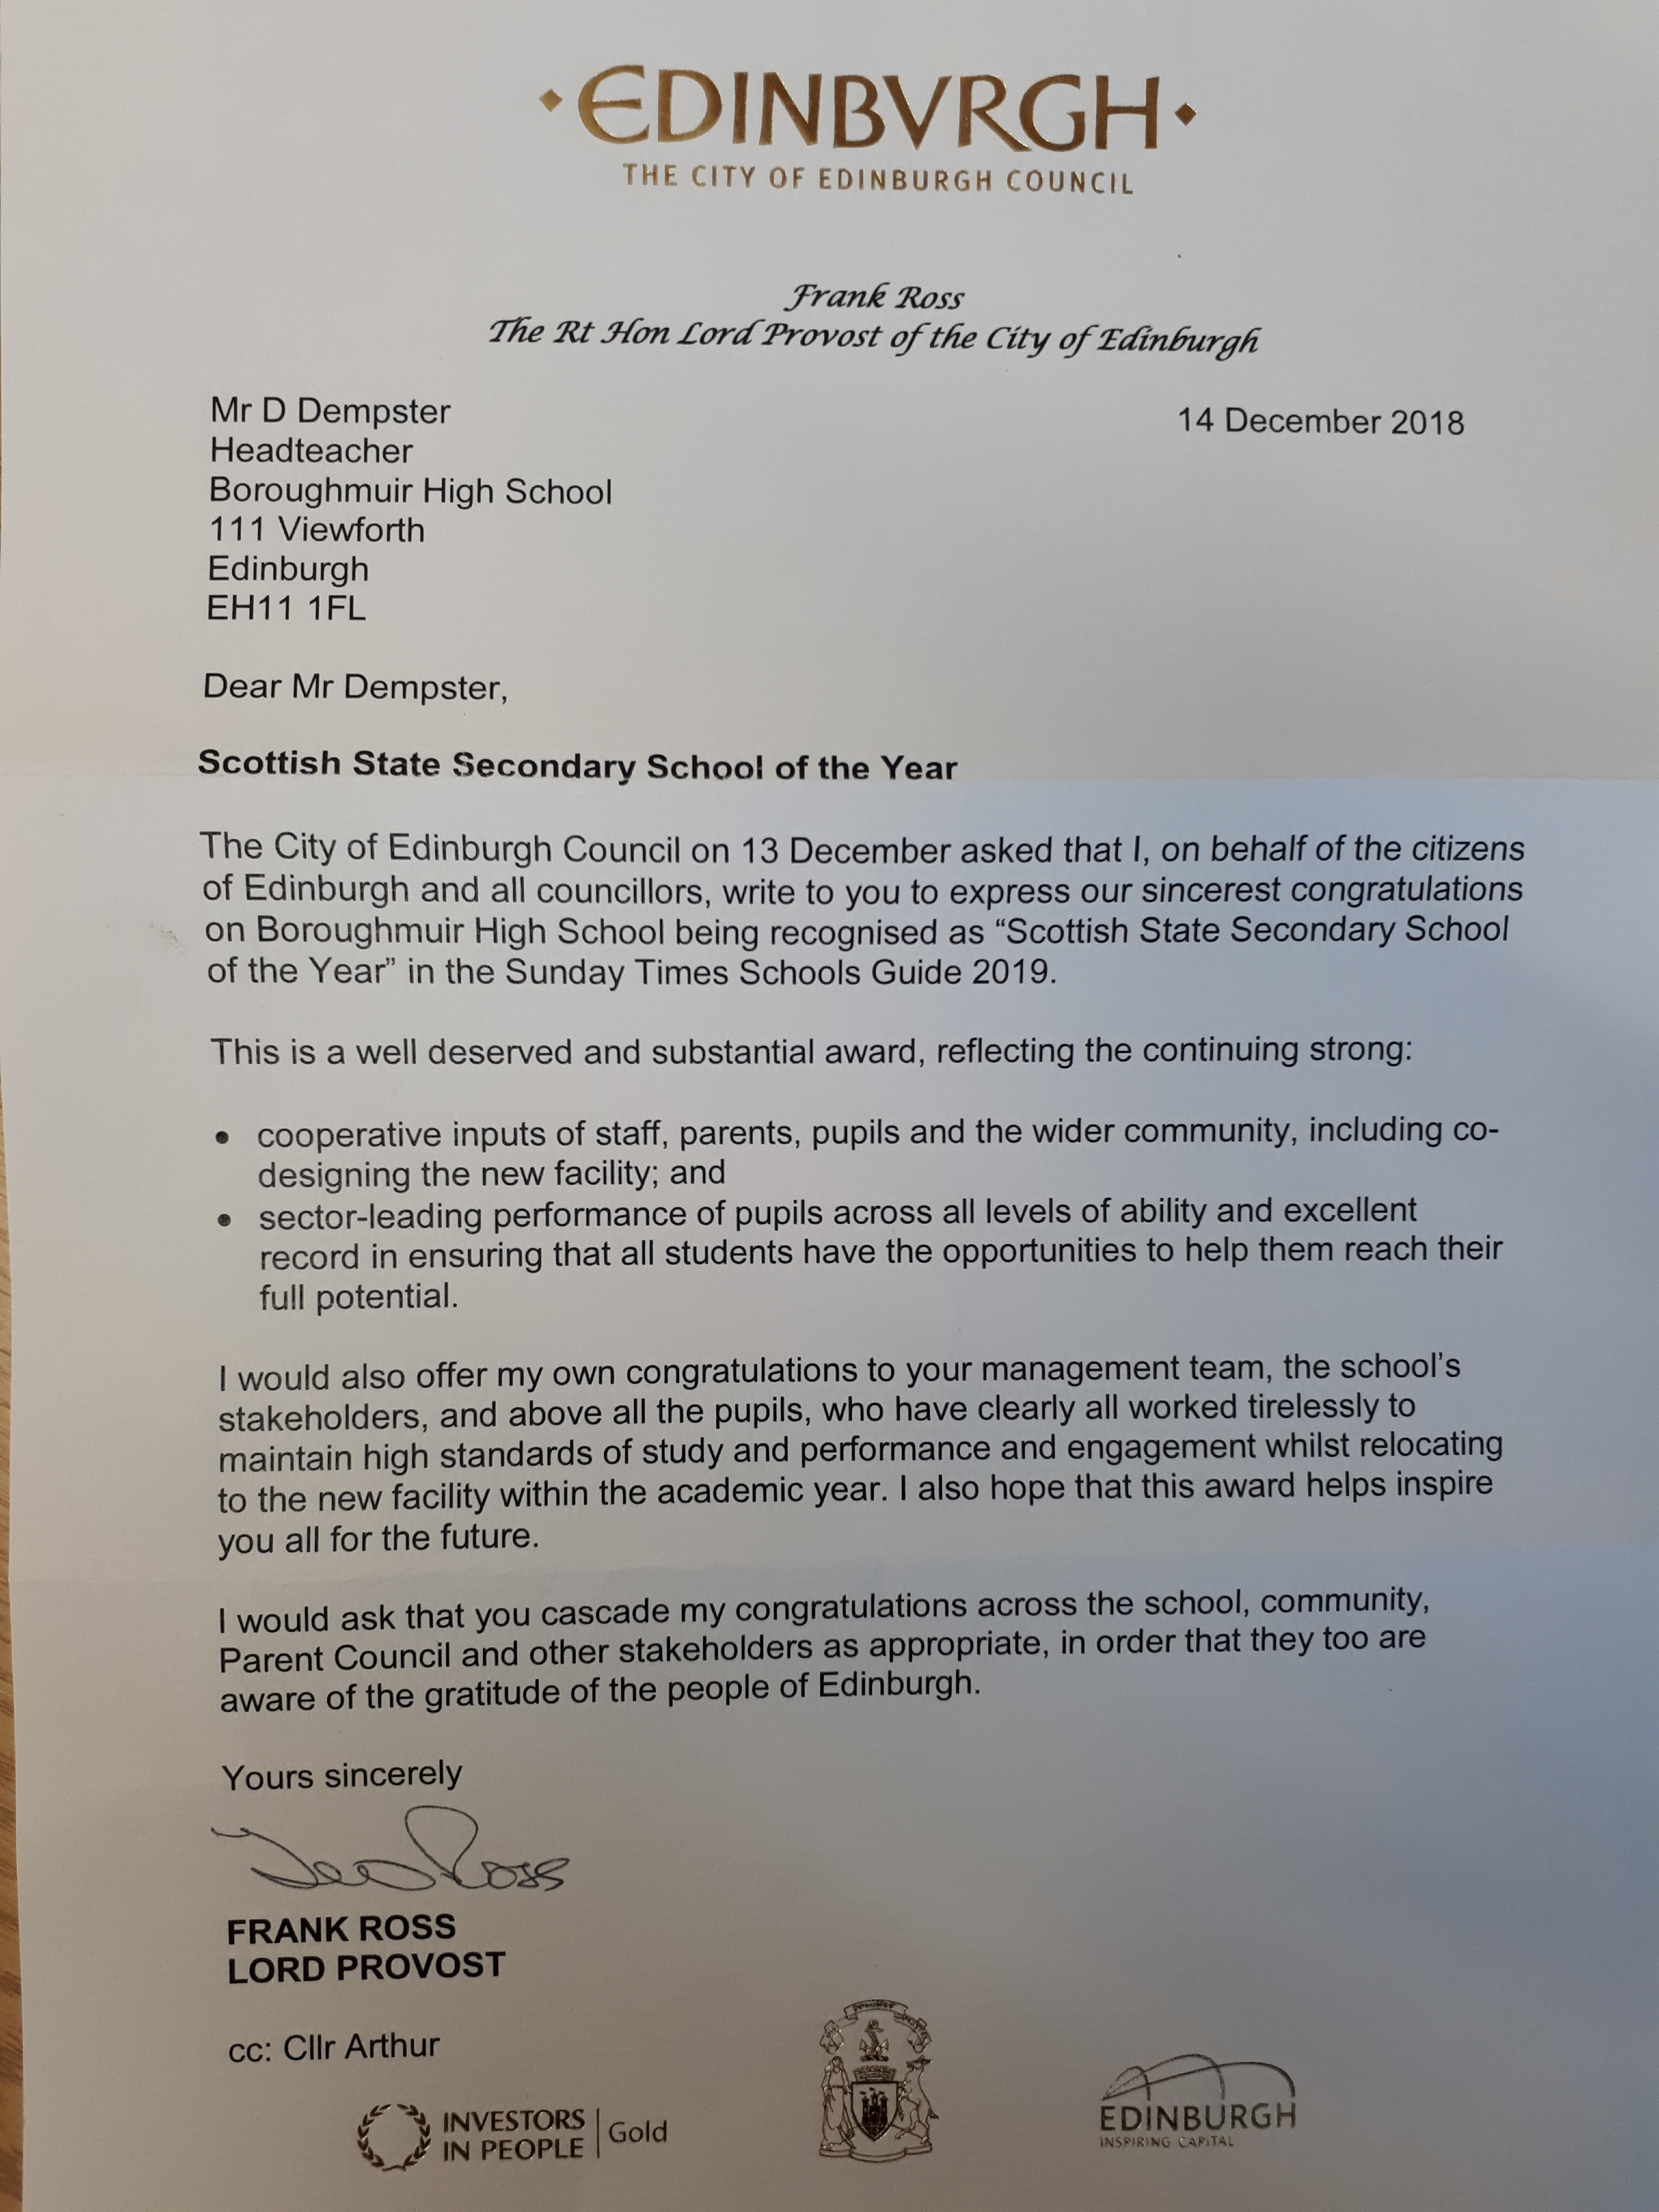 Letter to BHS from Lord Provost